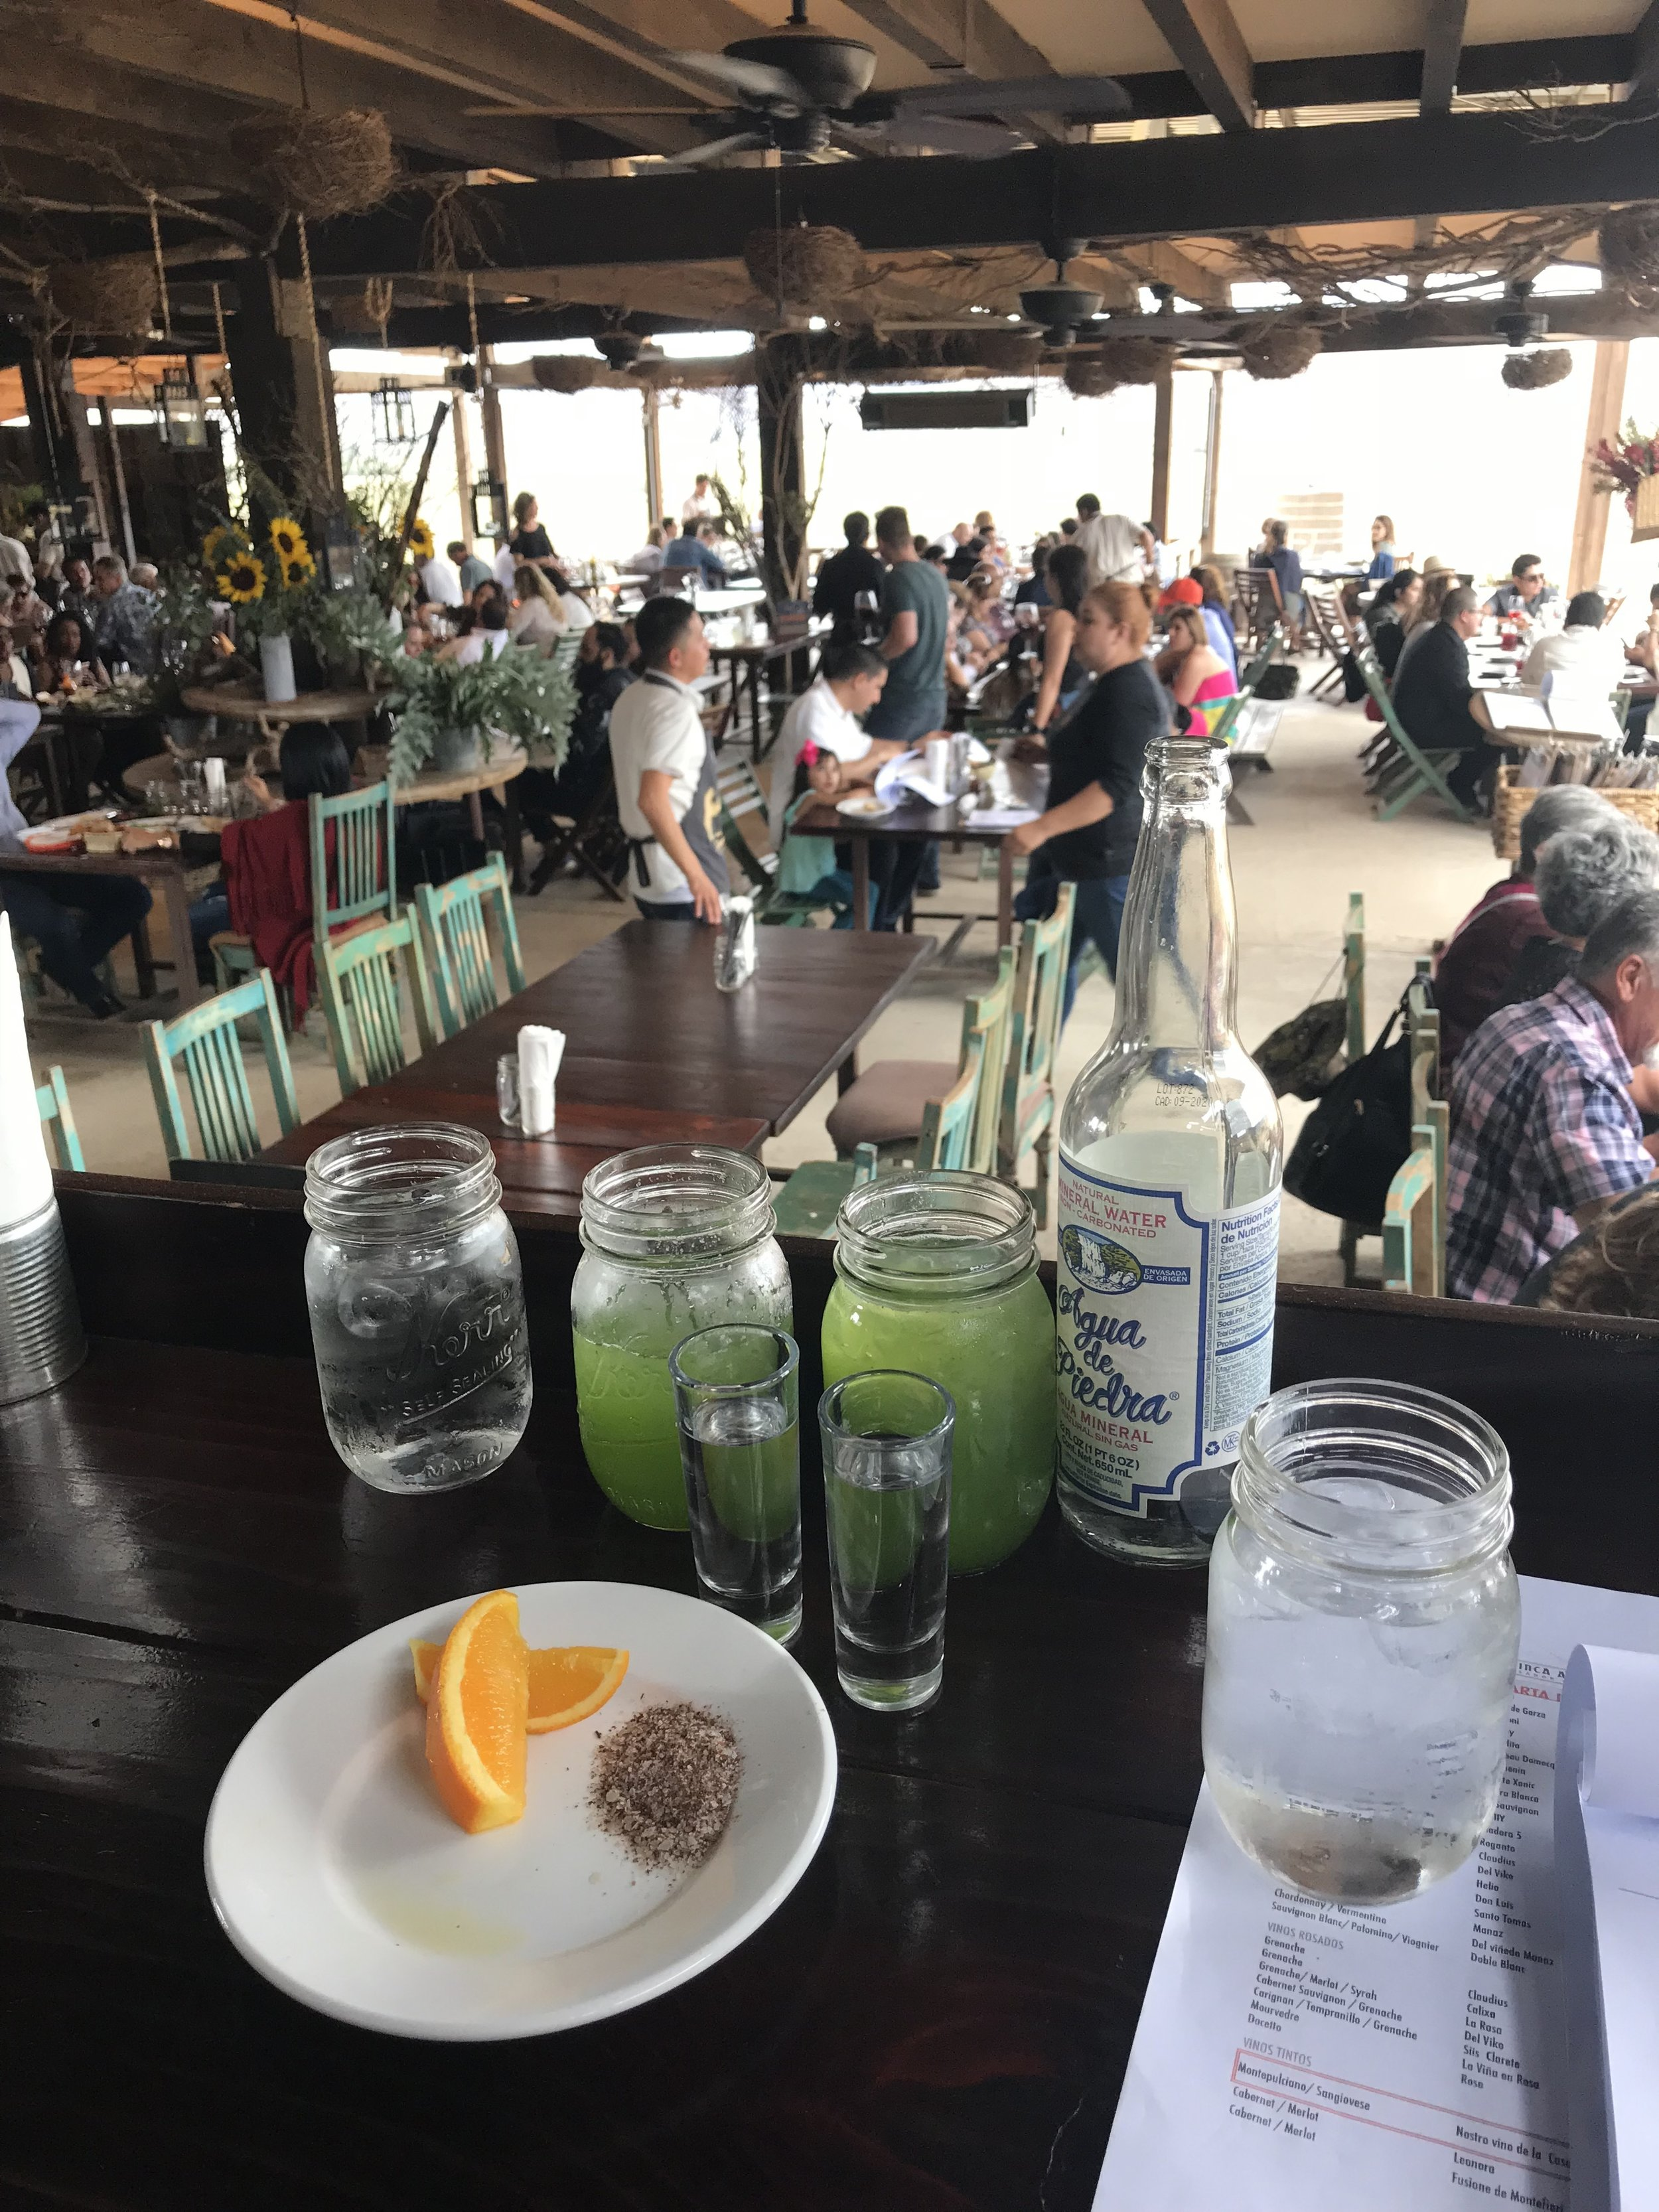 mexico's wine country serves more than just wine! pictured here is a tasting of mezcals and aguas frescas at finca altozano, valle de guadalupe.